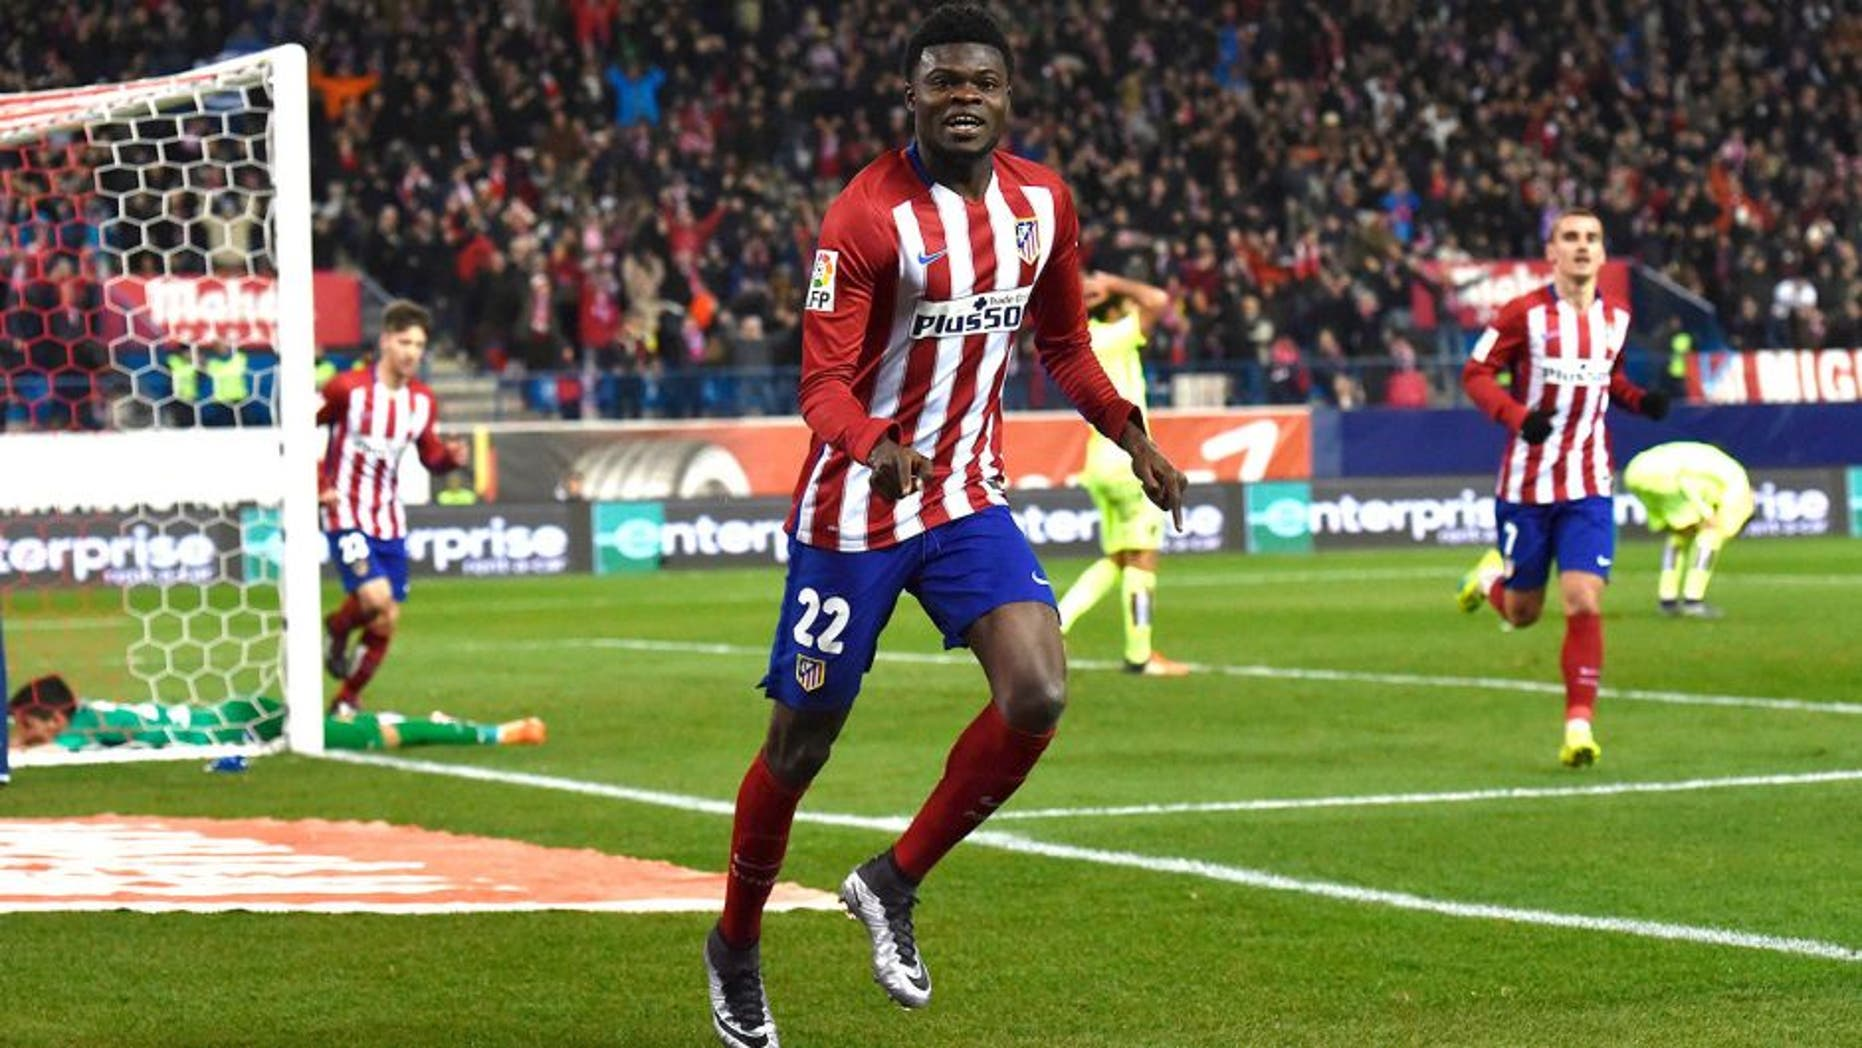 Atletico Madrid's Ghanaian midfielder Thomas Partey celebrates after scoring during the Spanish league football match Club Atletico de Madrid vs Leg vante UD at the Vicente Calderon stadium in Madrid on January 2, 2016. AFP PHOTO/ GERARD JULIEN / AFP / GERARD JULIEN (Photo credit should read GERARD JULIEN/AFP/Getty Images)